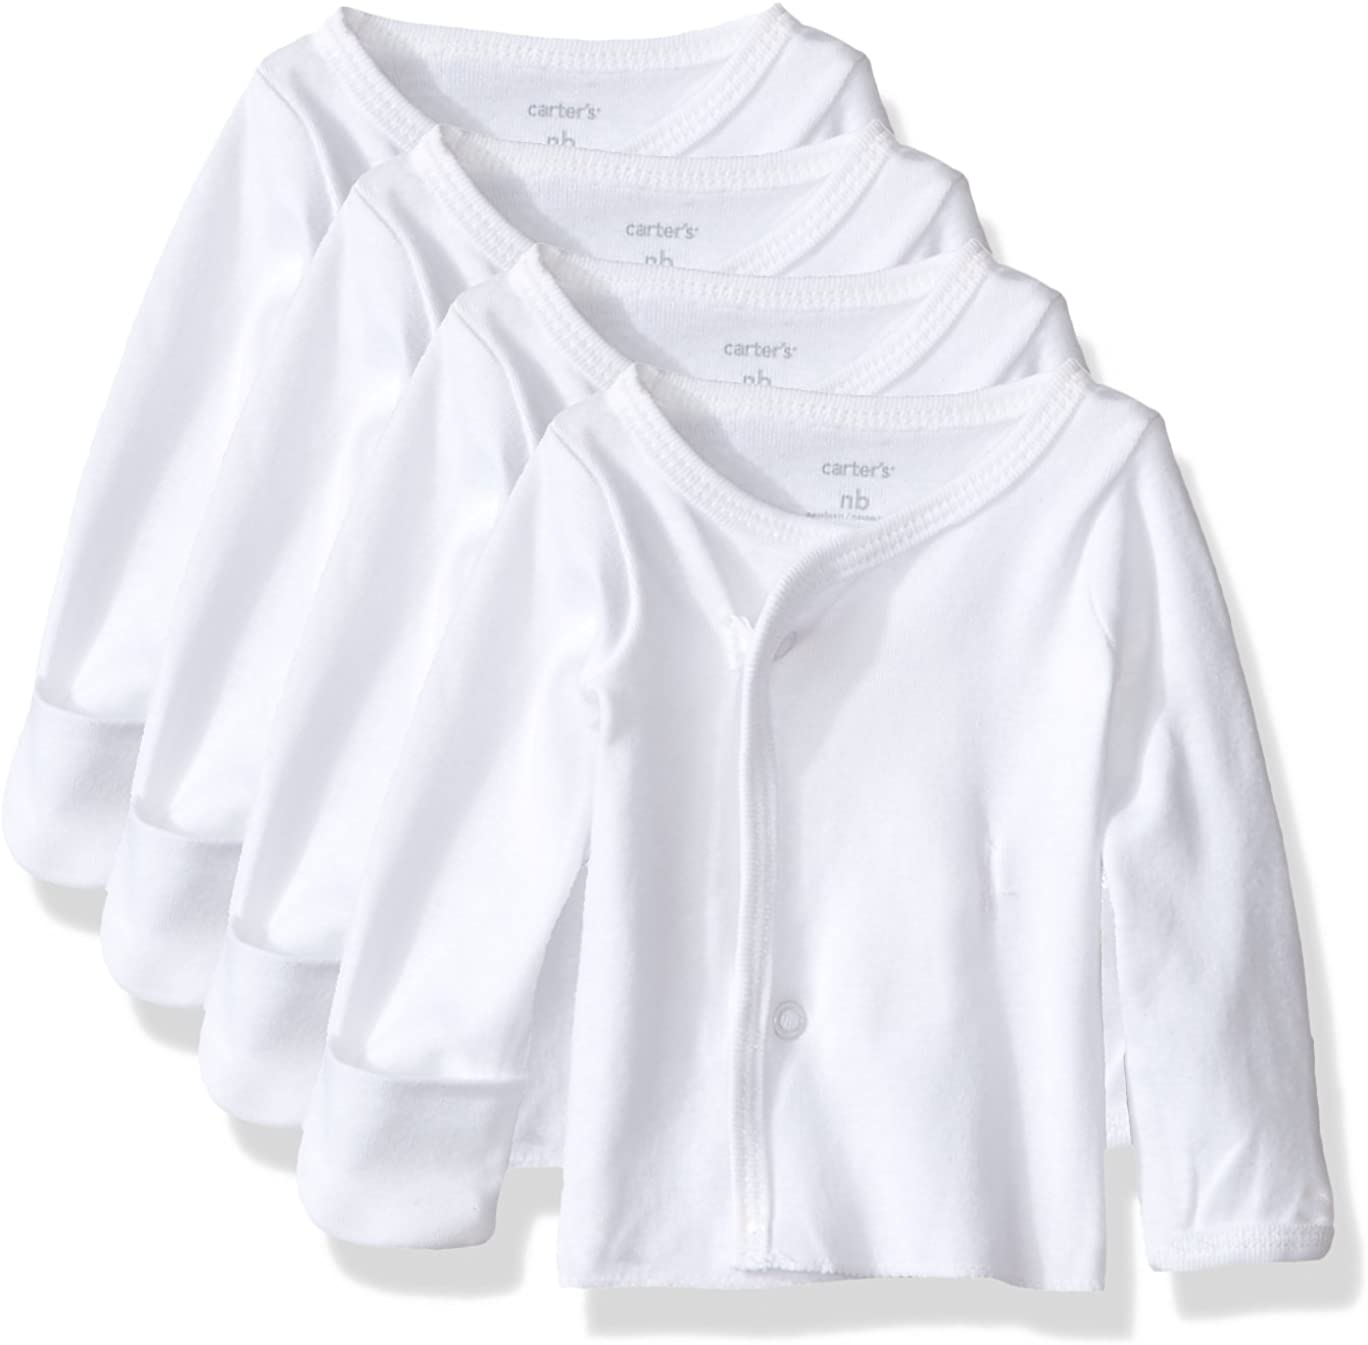 Carter's Unisex Baby 4 Pack Side Snap Tees (Baby) - White - Preemie